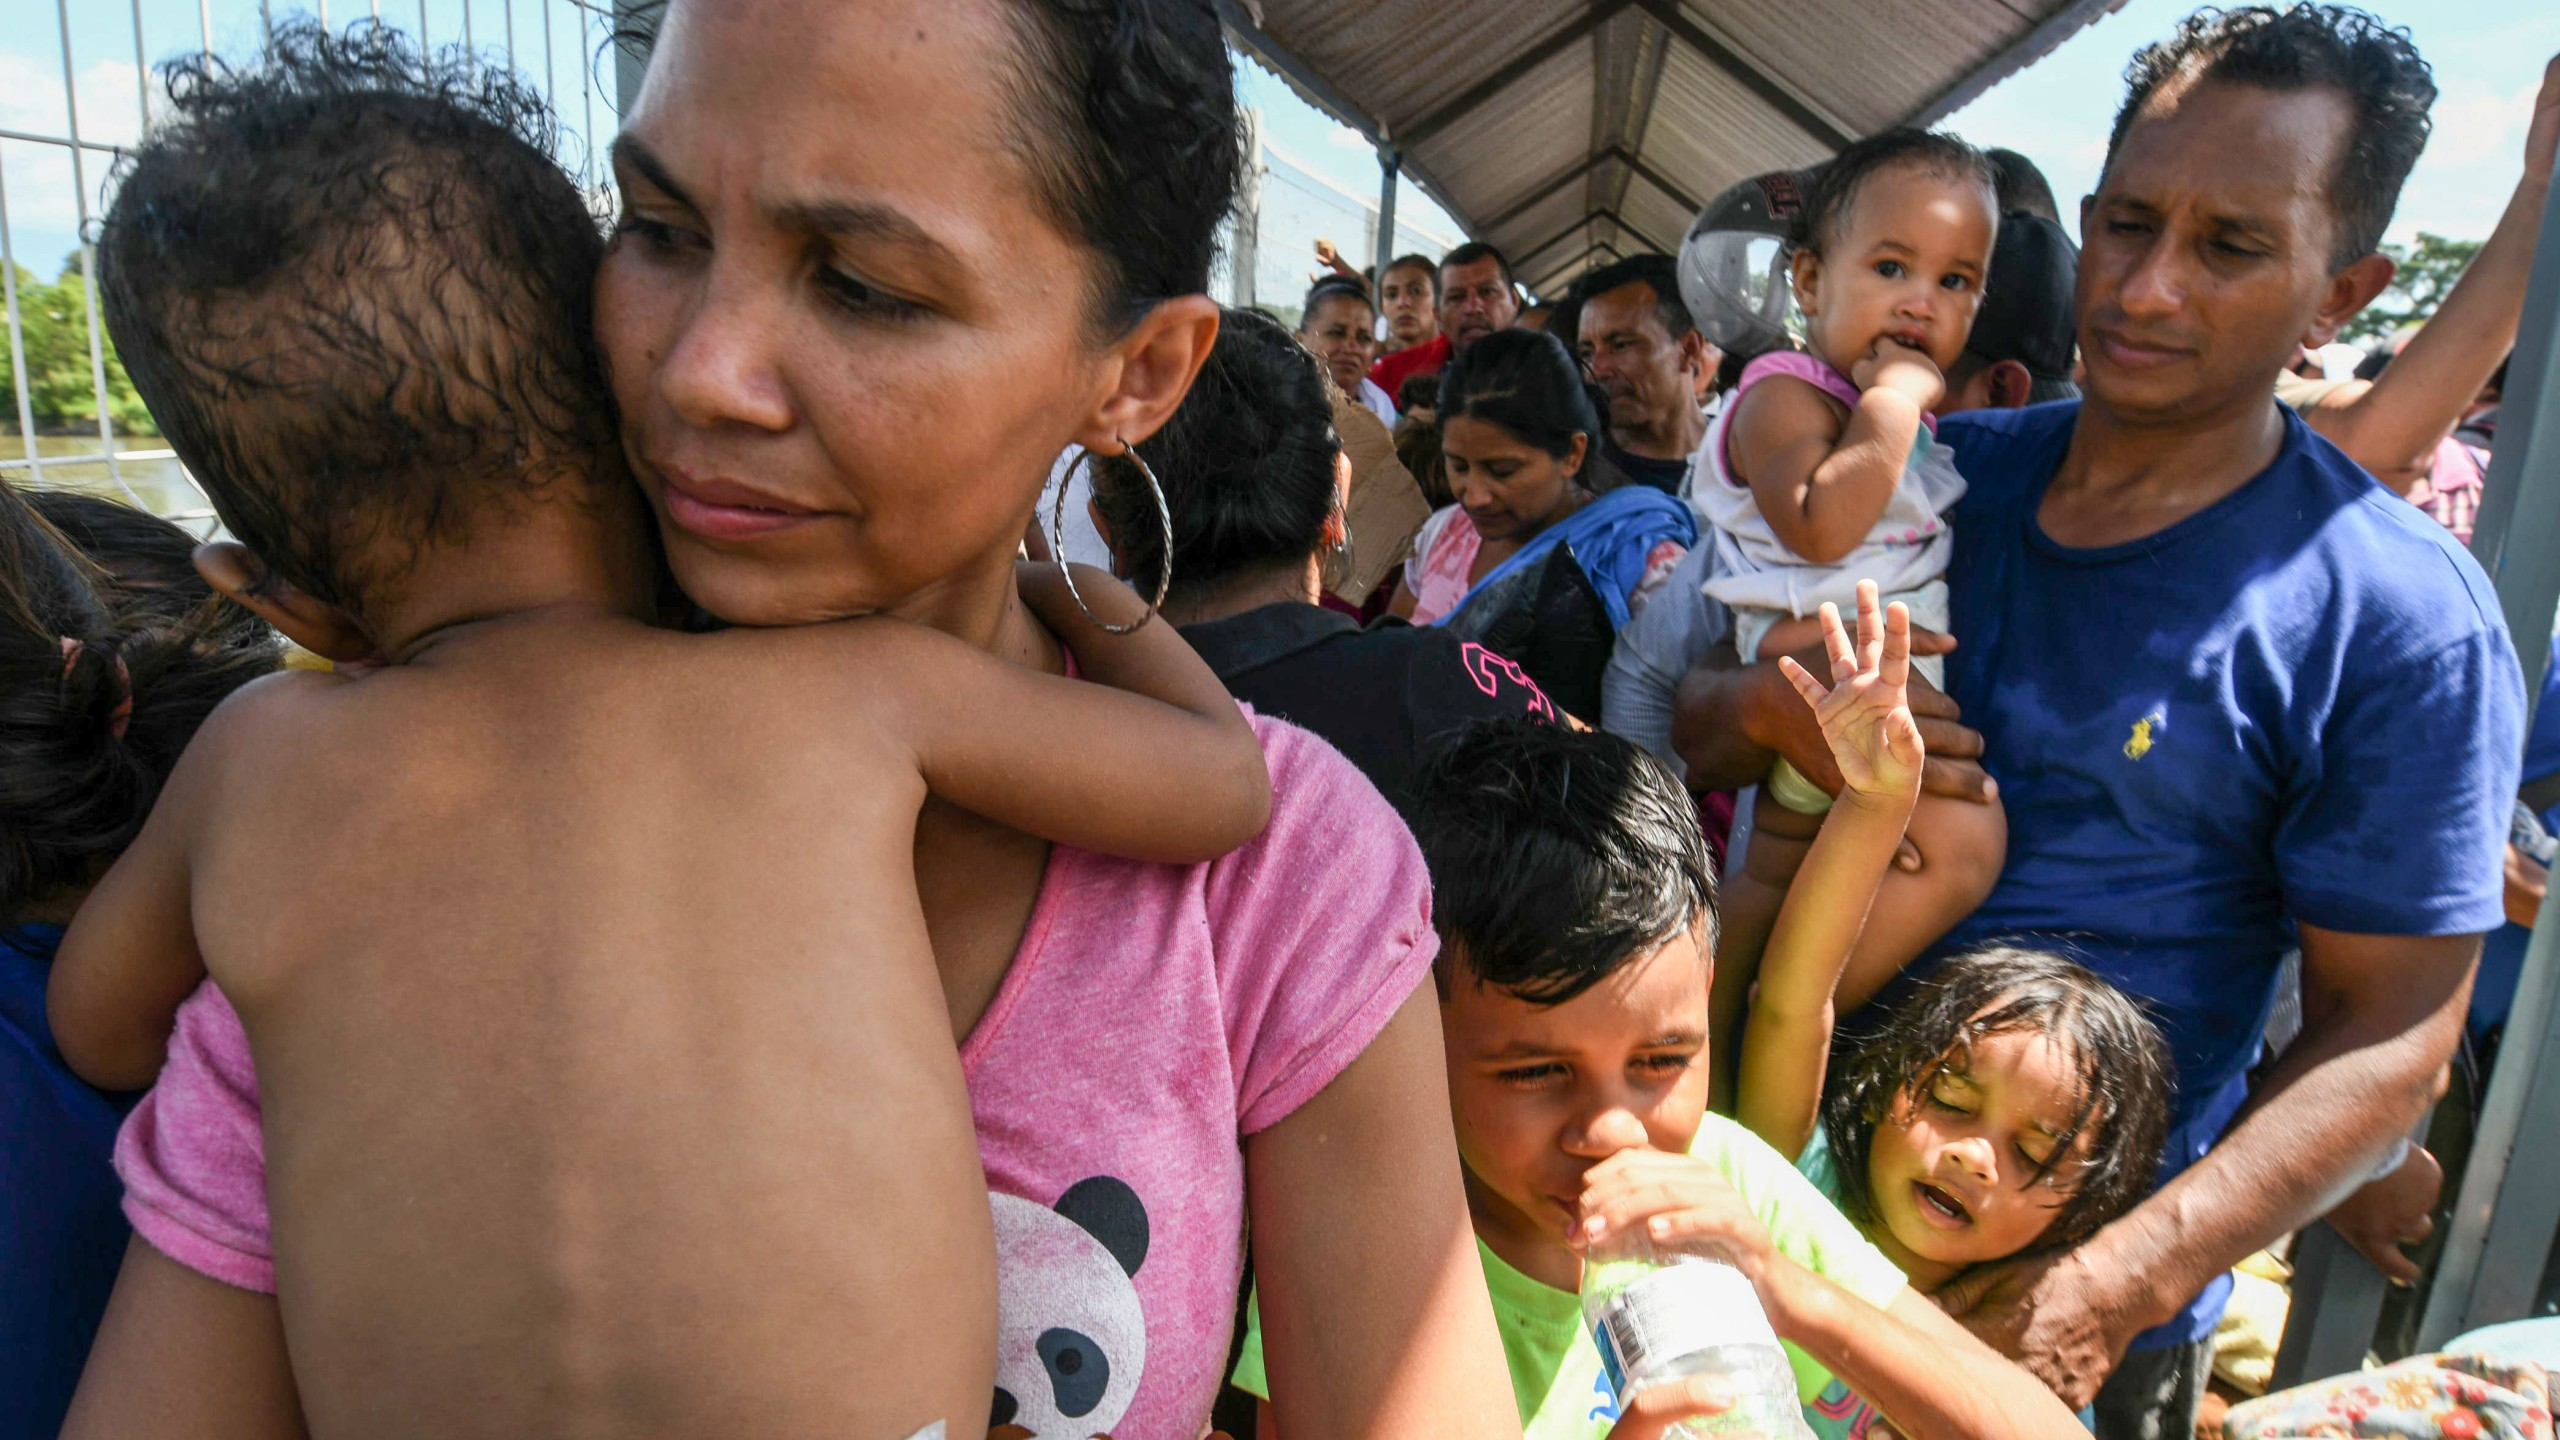 A Honduran migrant couple and their five children who are taking part in a caravan heading to the U.S. wait to cross the border from Ciudad Tecun Uman in Guatemala, to Ciudad Hidalgo, Mexico, on Oct. 22, 2018. (Credit: ORLANDO SIERRA/AFP/Getty Images)